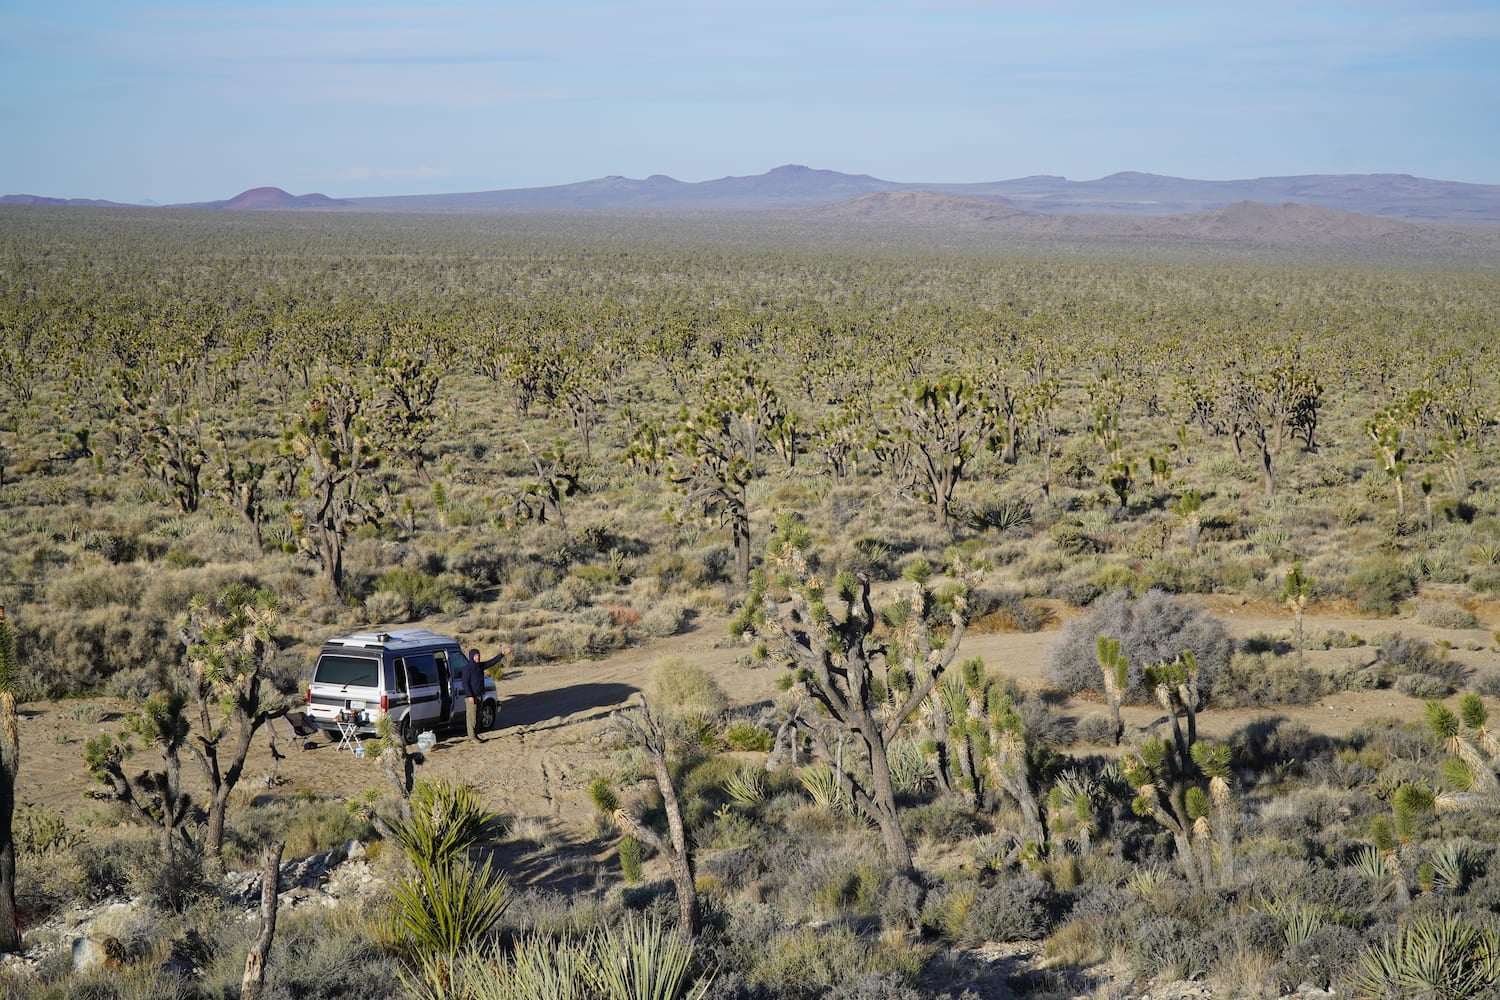 The Wayward home van in the desert surrounded by Joshua trees.